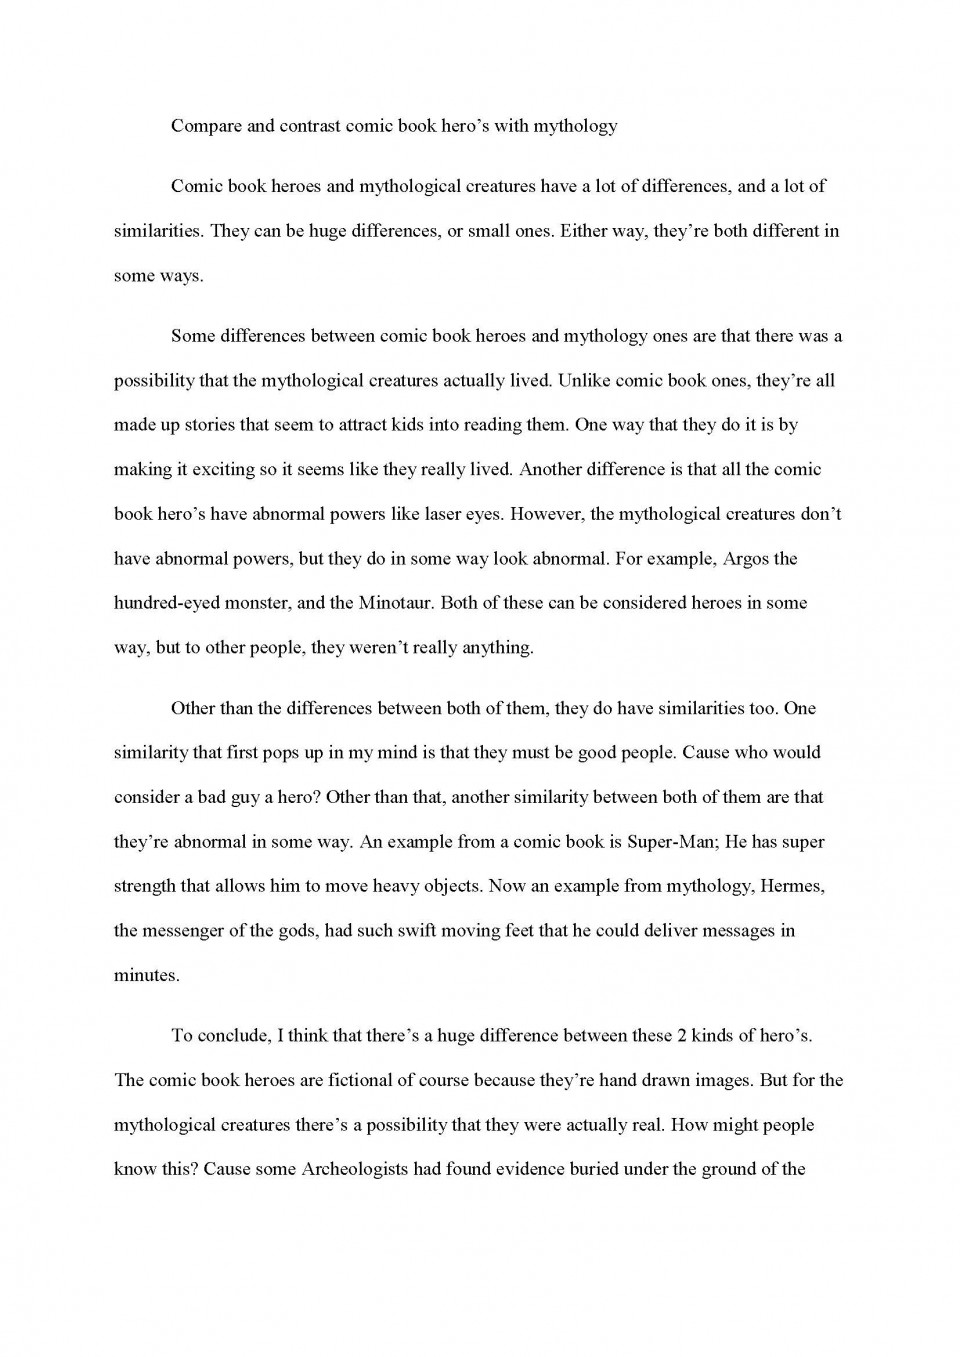 005 Compare And Contrast Essay Sampleid8072 Example Exceptional Template High School 5th Grade Vs College 960